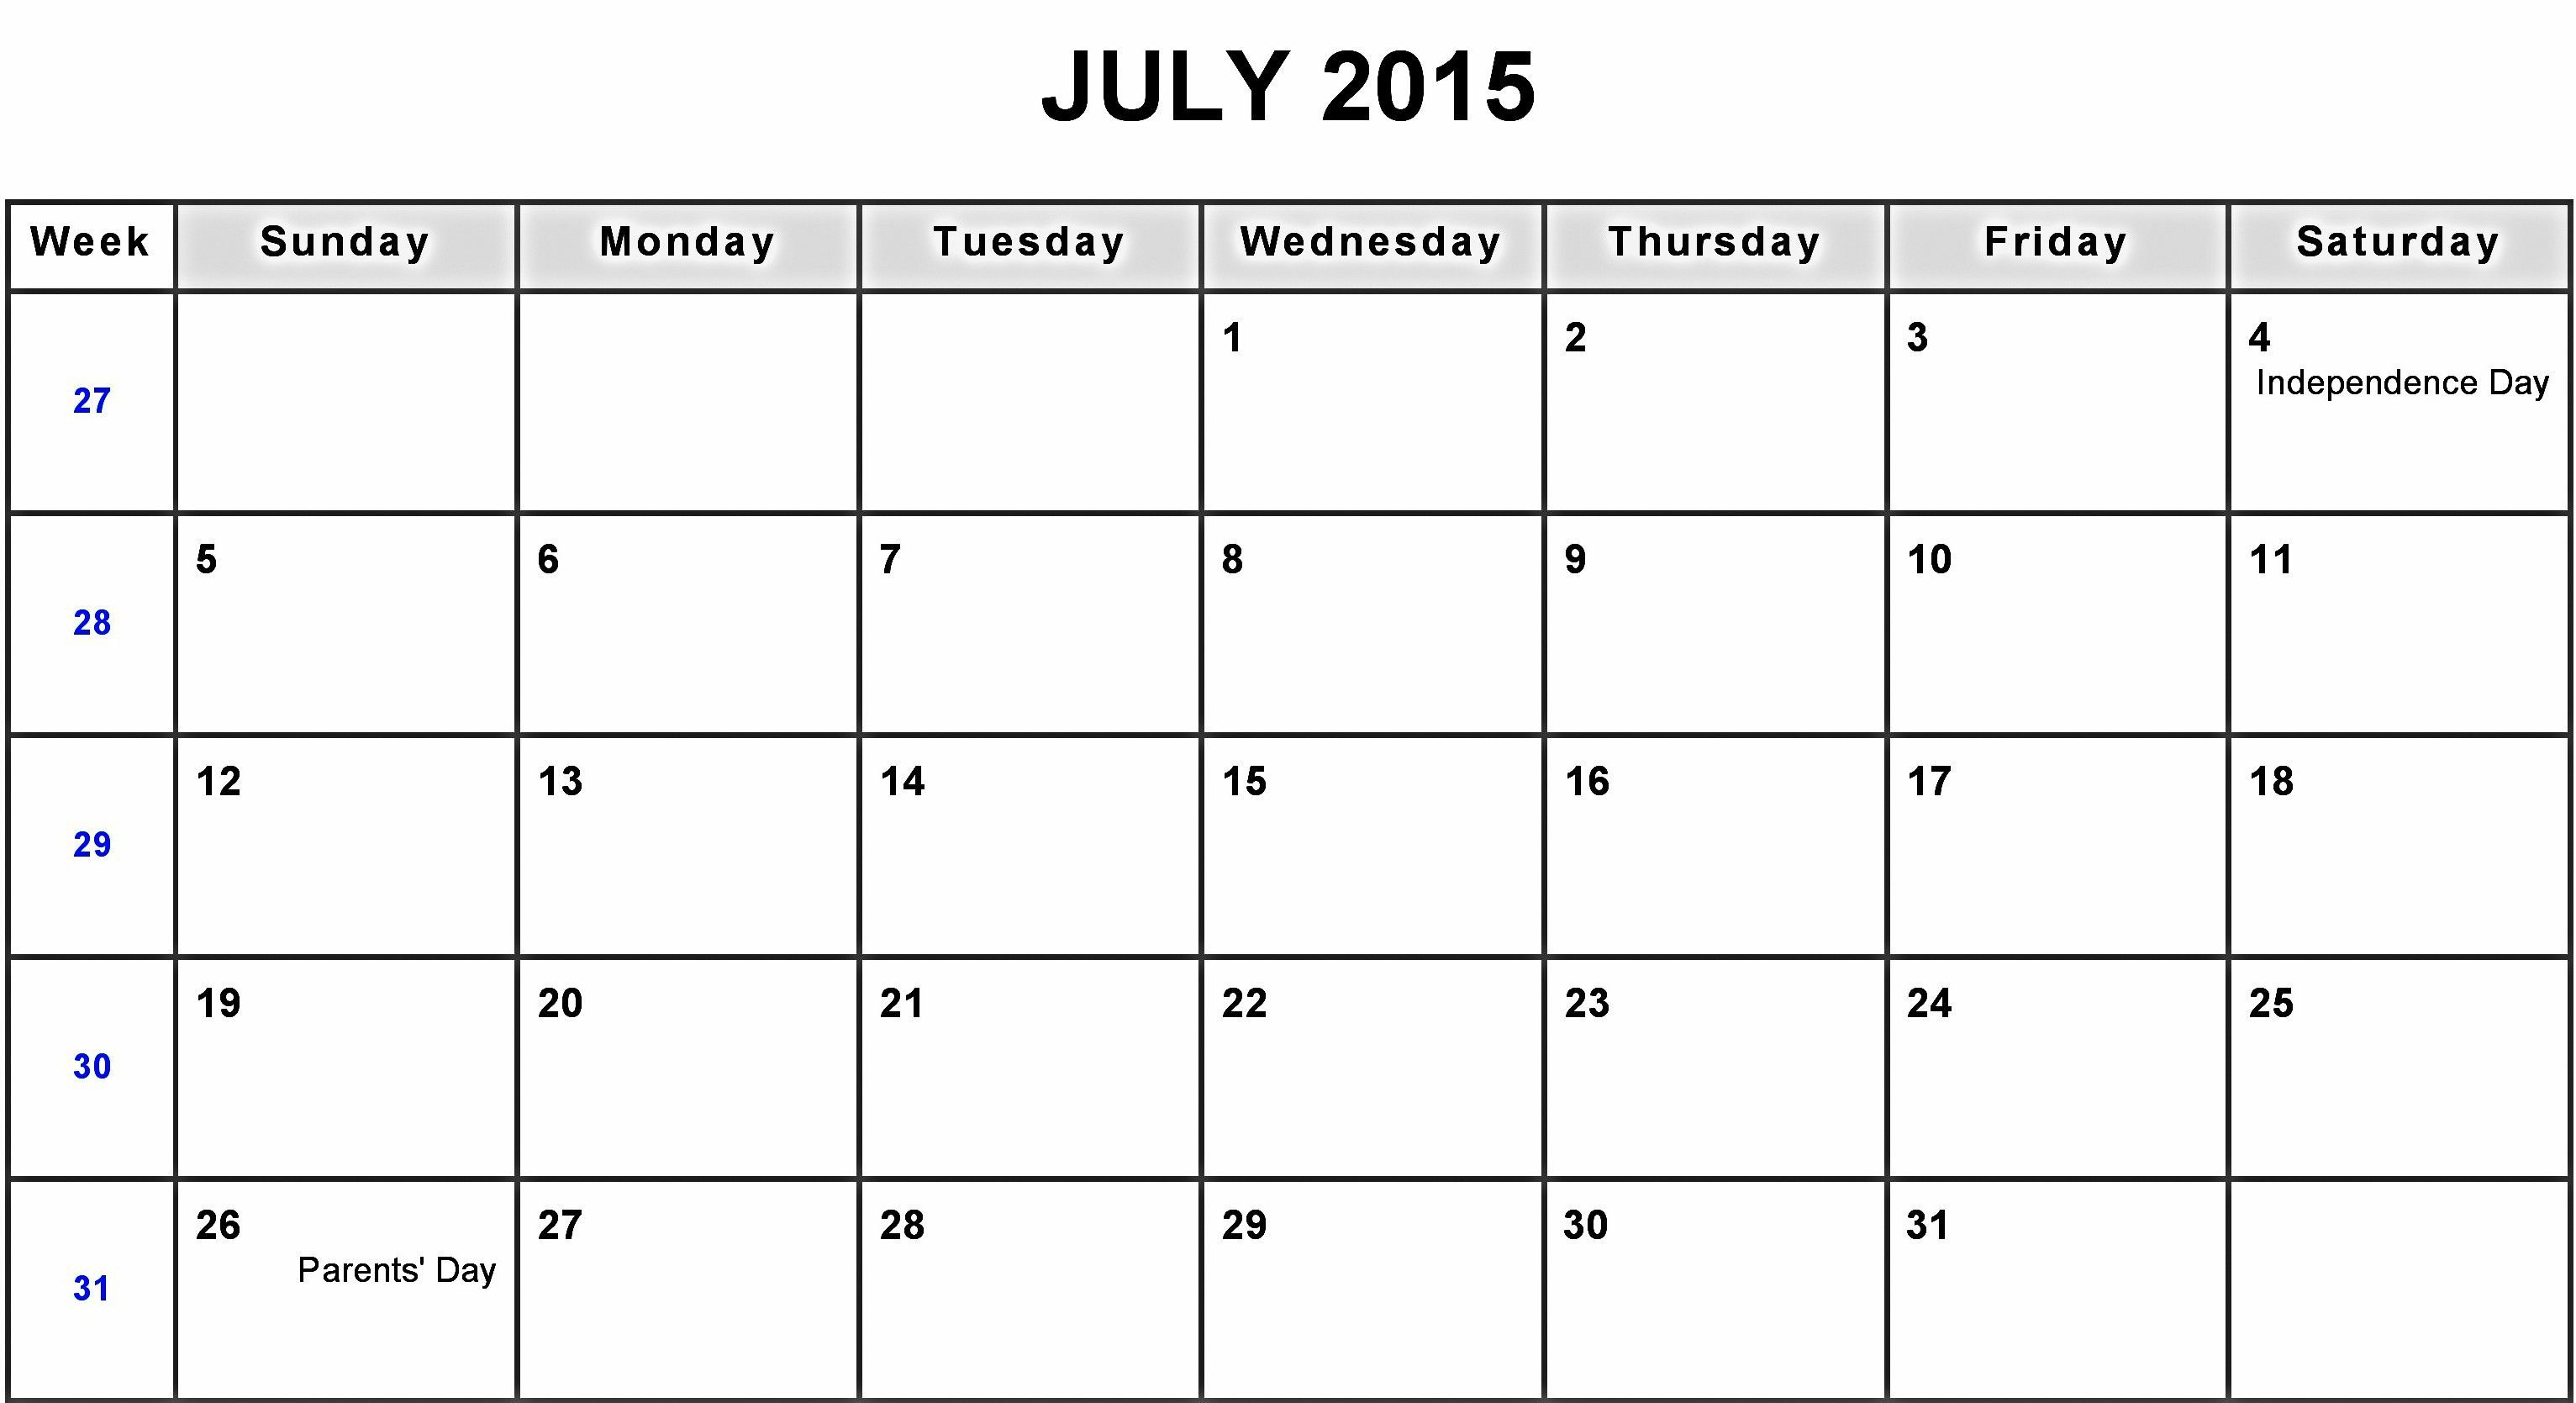 july 2015 calendar blank get an exclusive collection of july 2015 calendar printable template